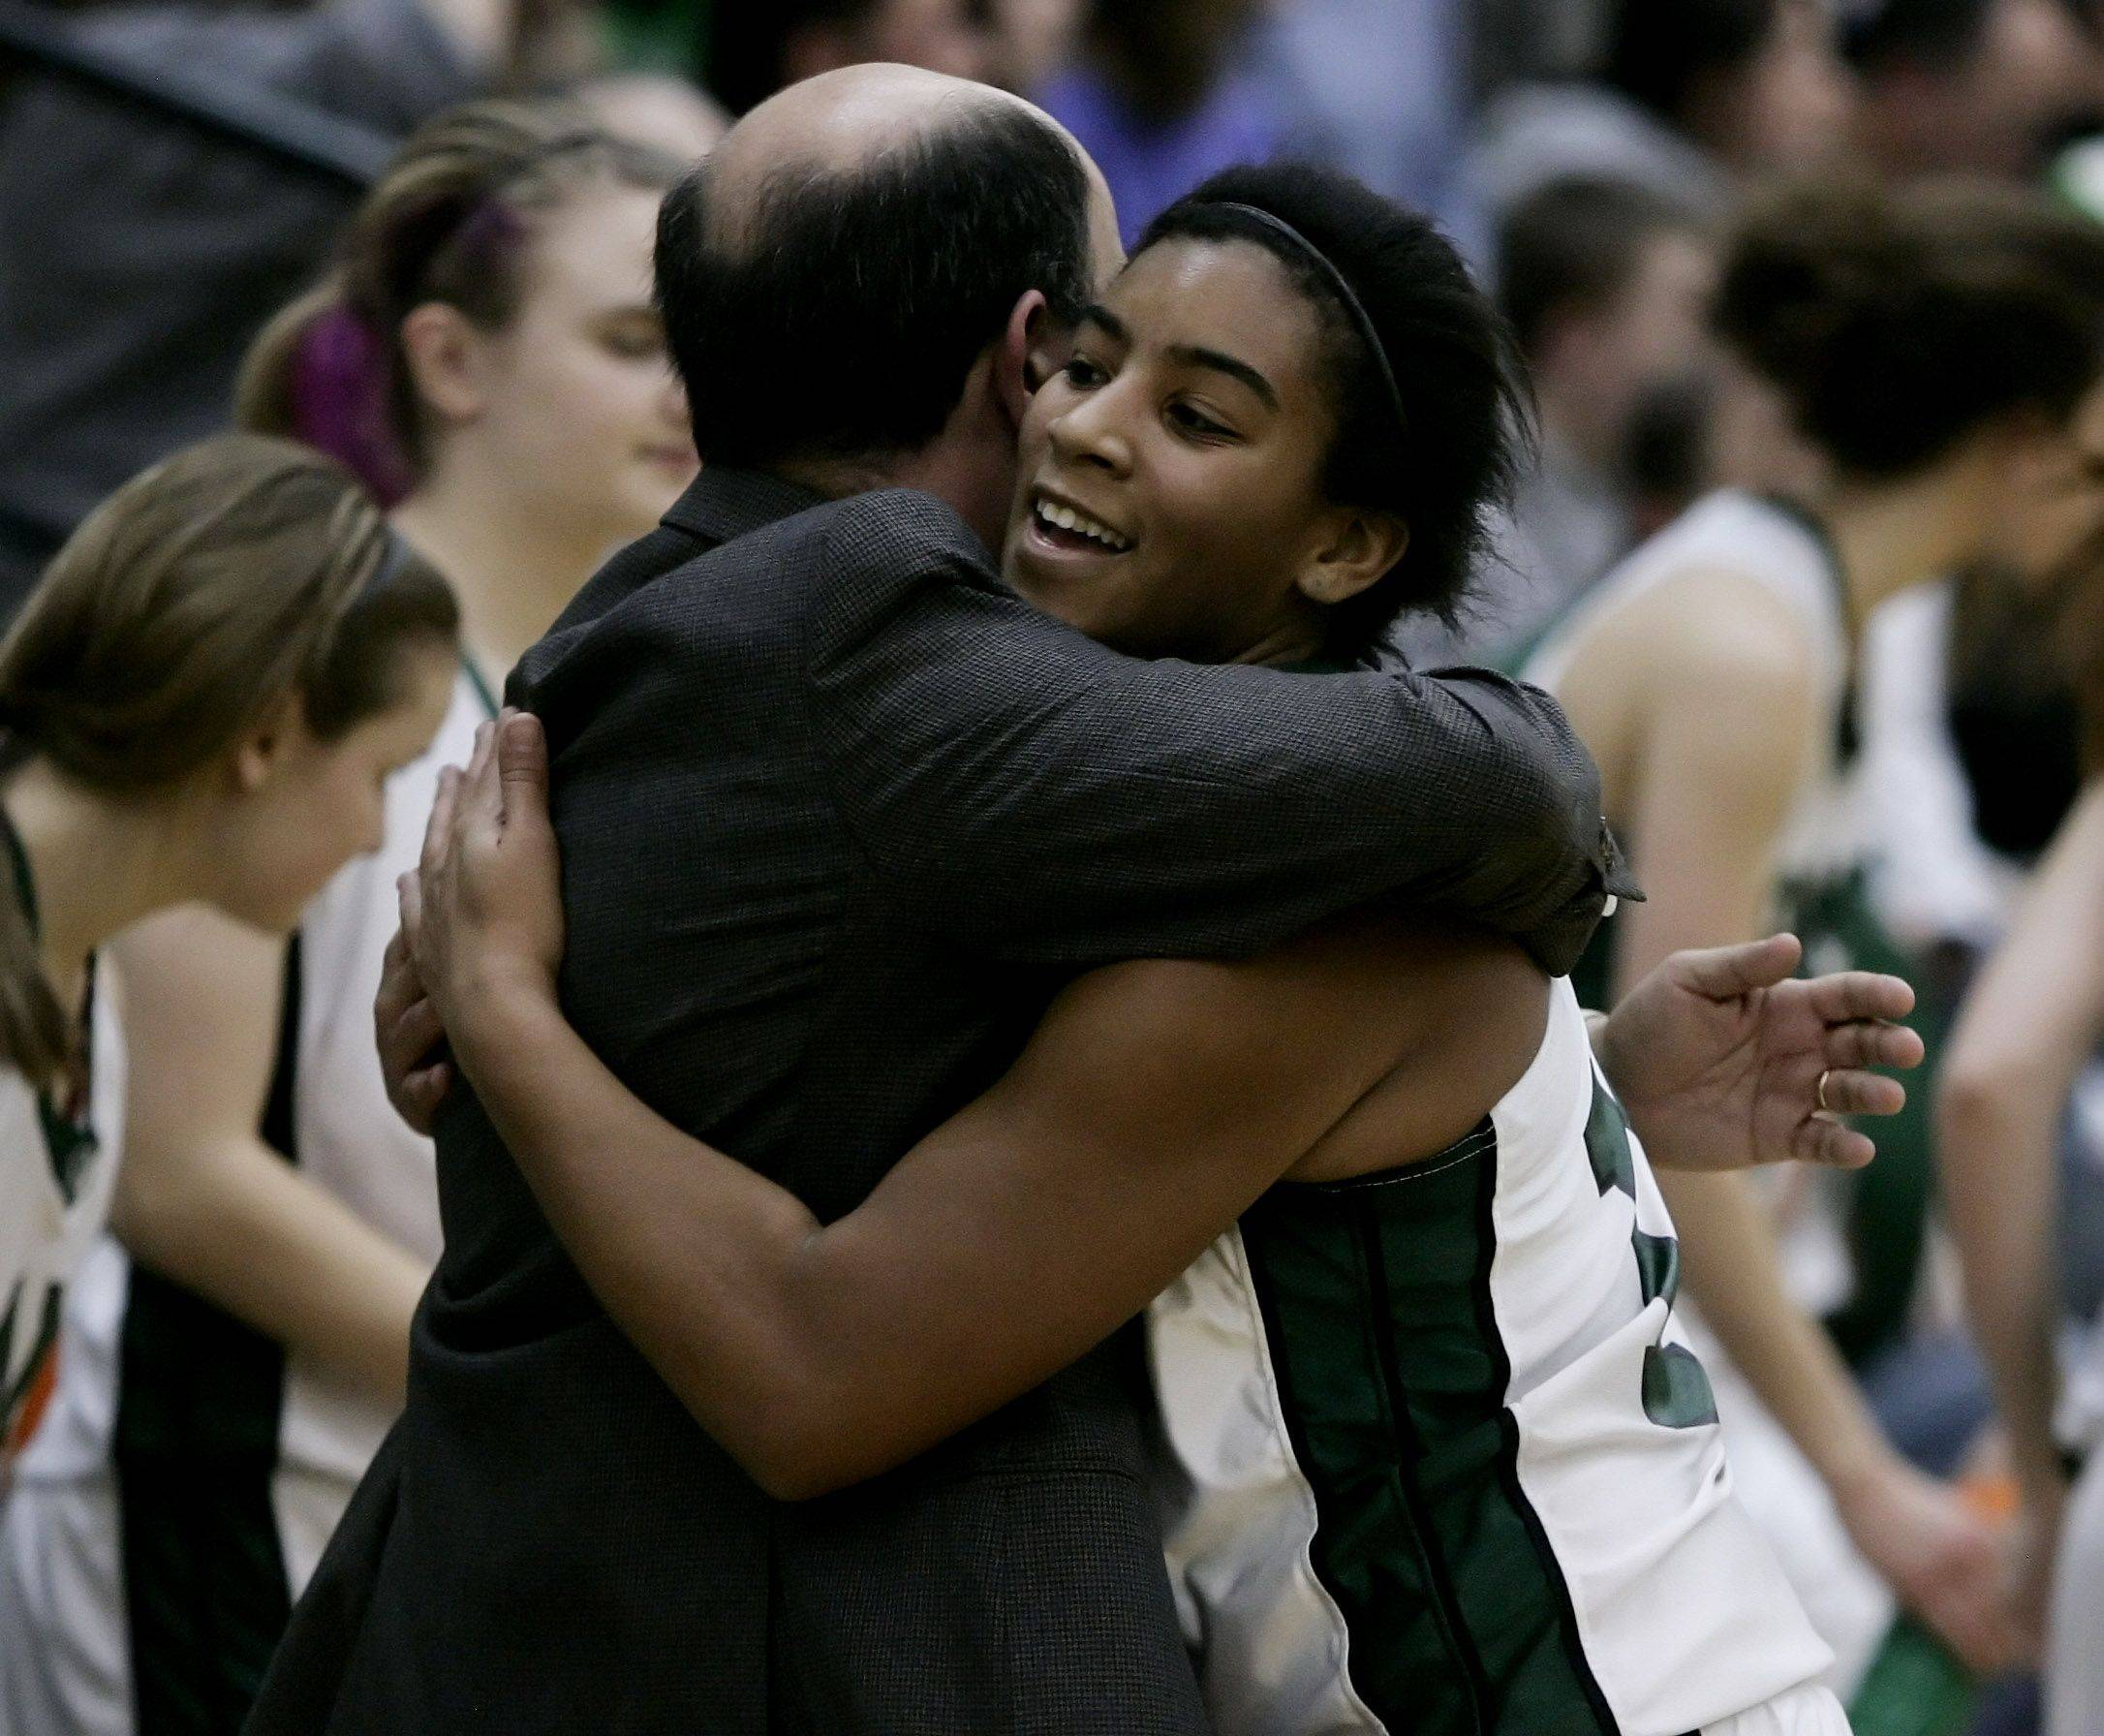 Grayslake Central guard Alex Scarbro is hugged by coach Steve Ikenn at the Class 3A girls high school sectional basketball championship Thursday against Johnsburg. Grayslake Central won the game 69-46.